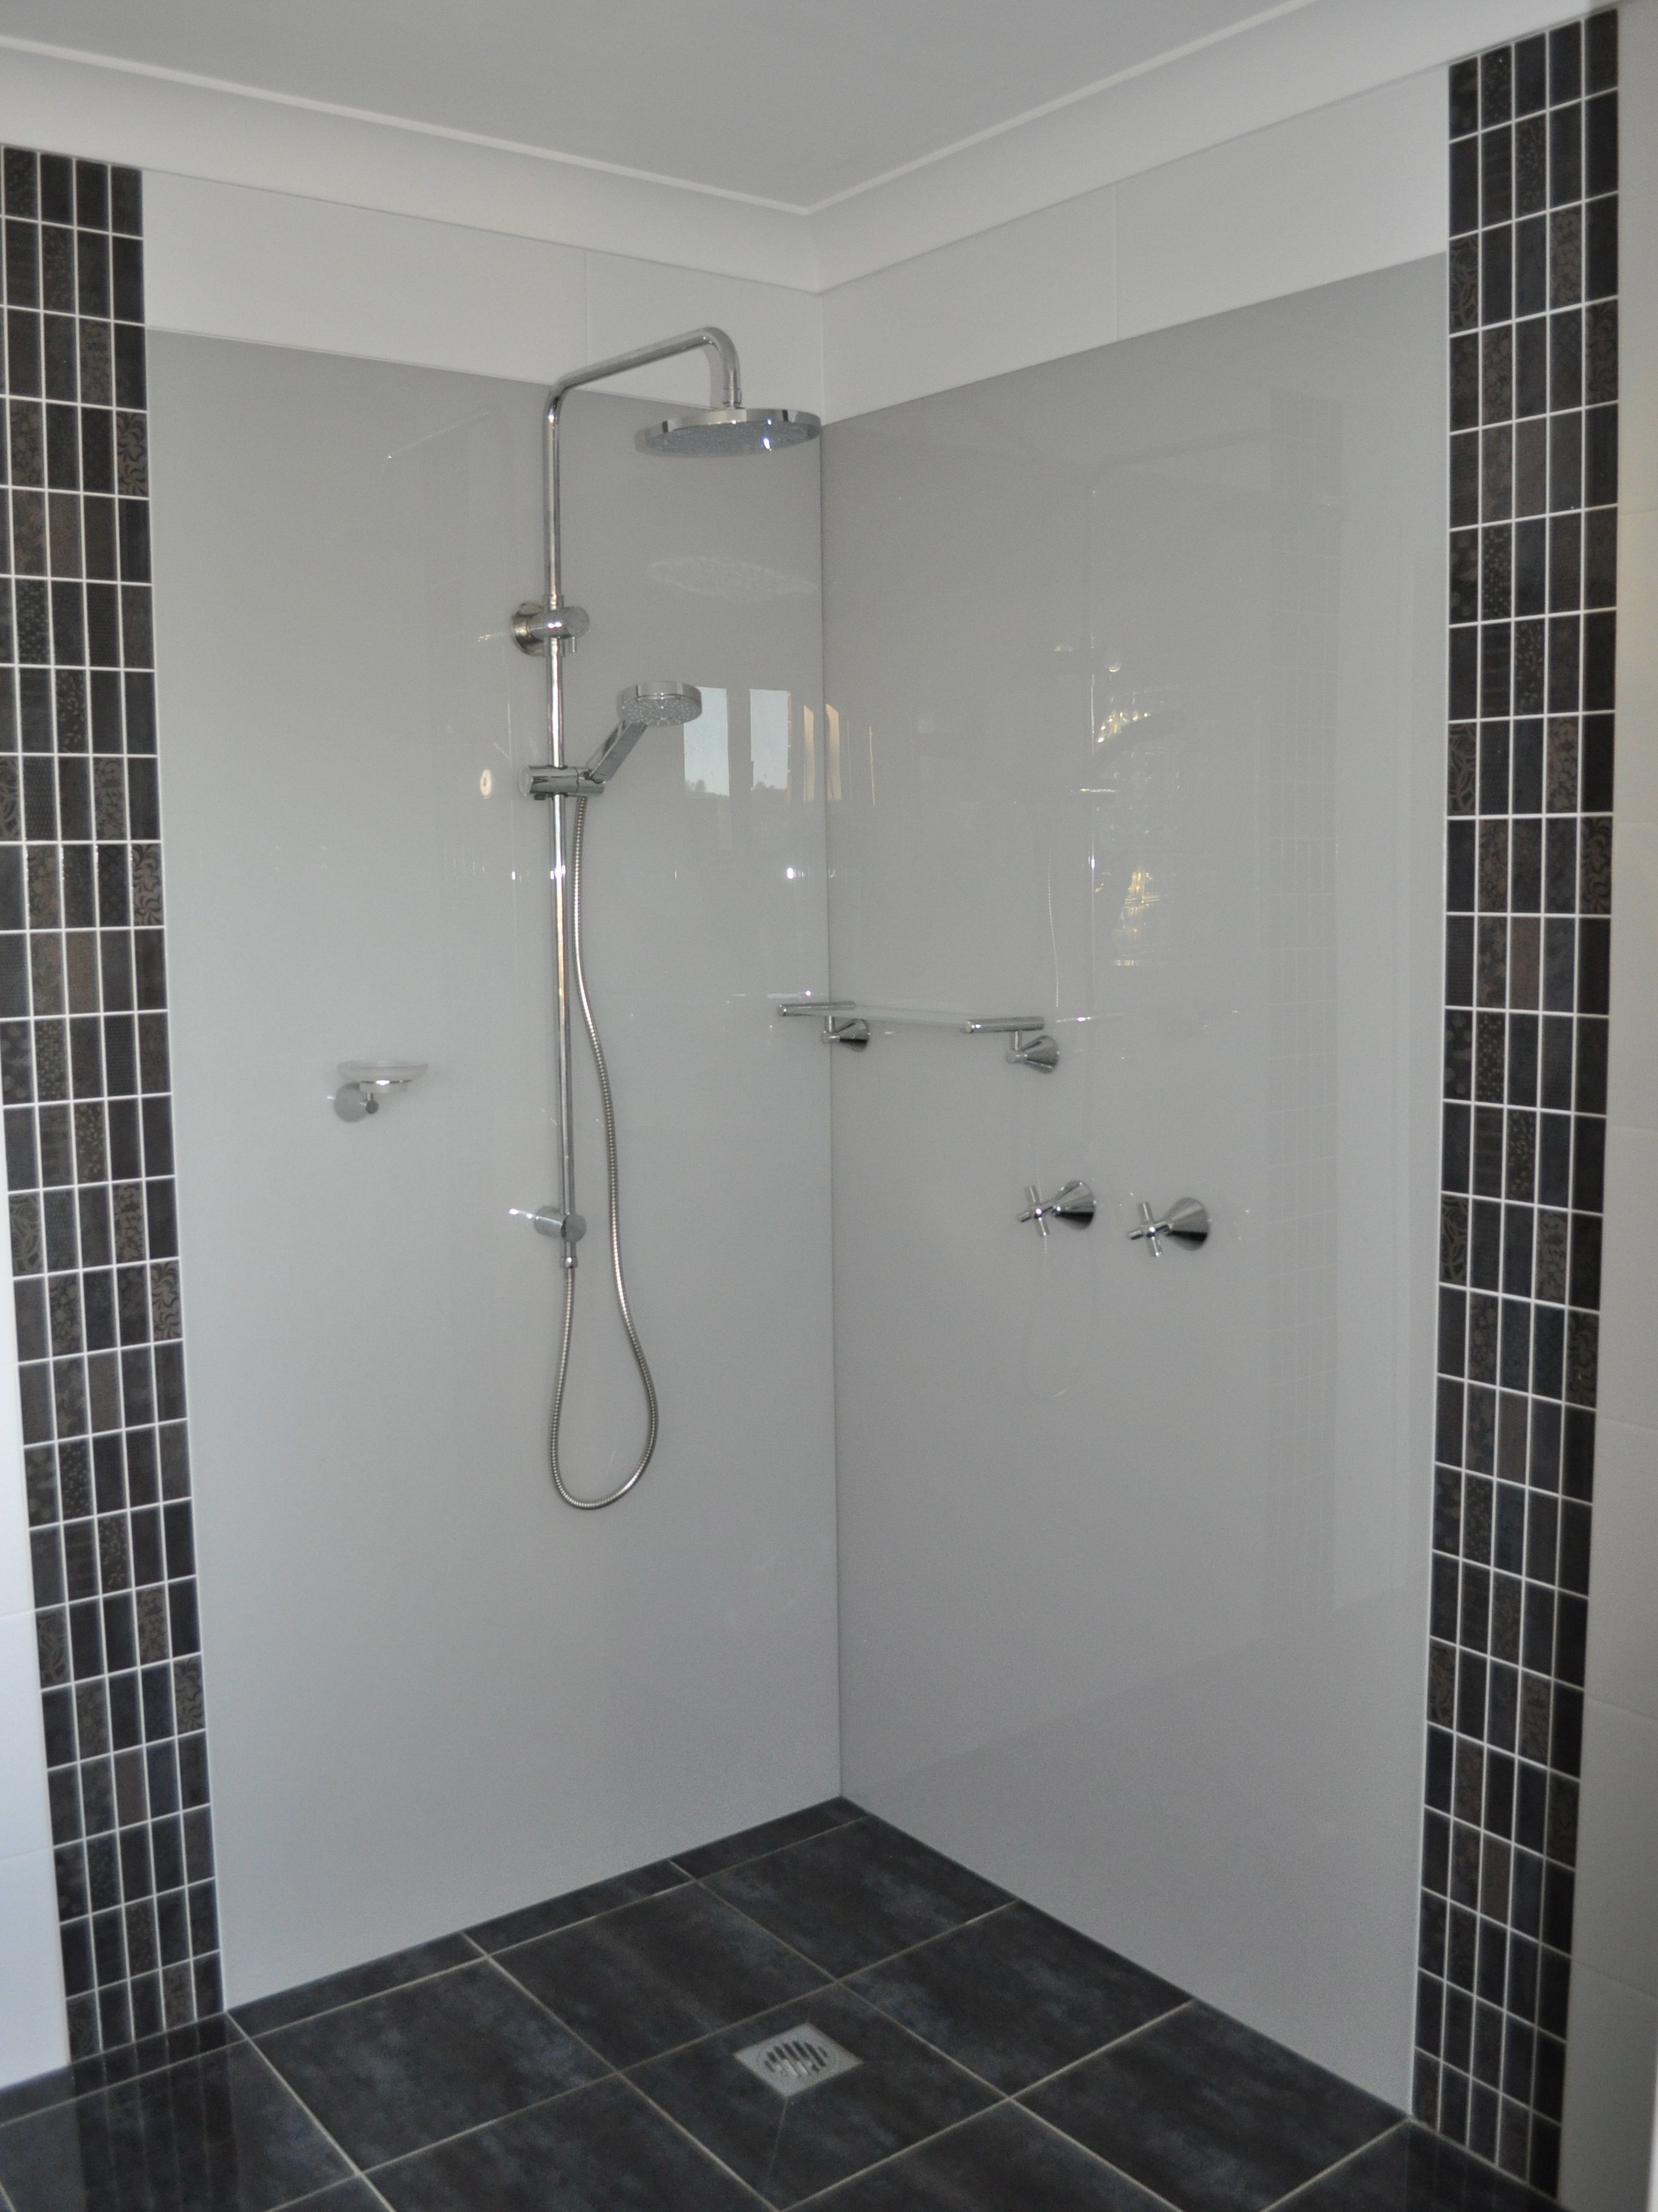 enticing jets vikrell seat showers with iron size cast installation full pan picture base for bases chandler sofa tile pans shower x in panels kohler of design installationkohler